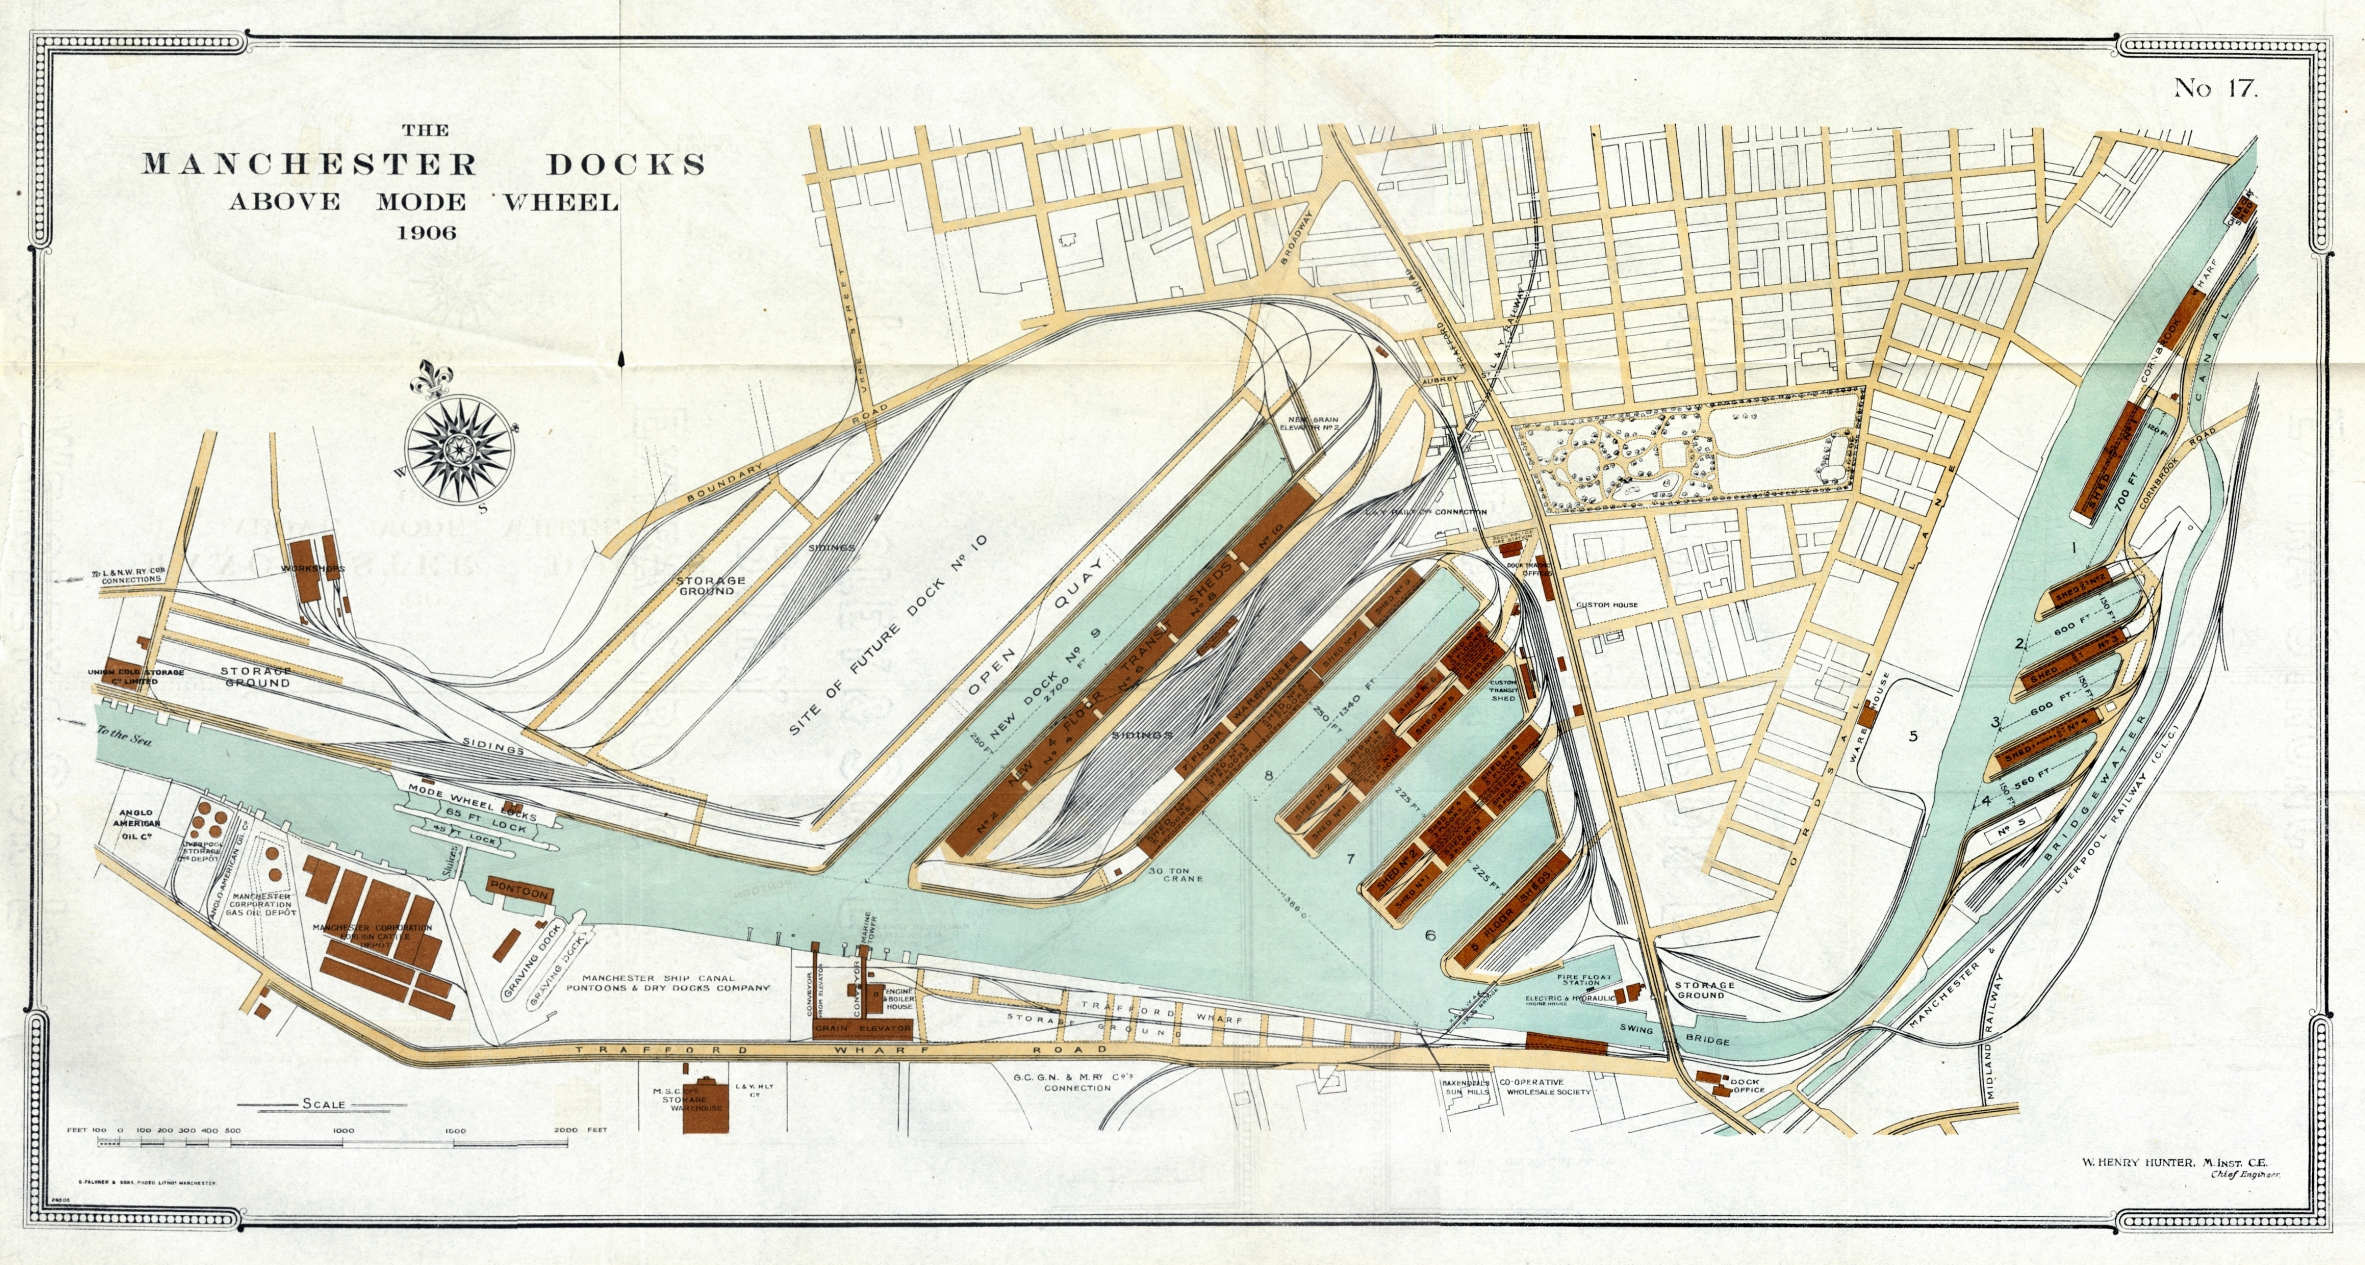 Manchester docks in Salford plan